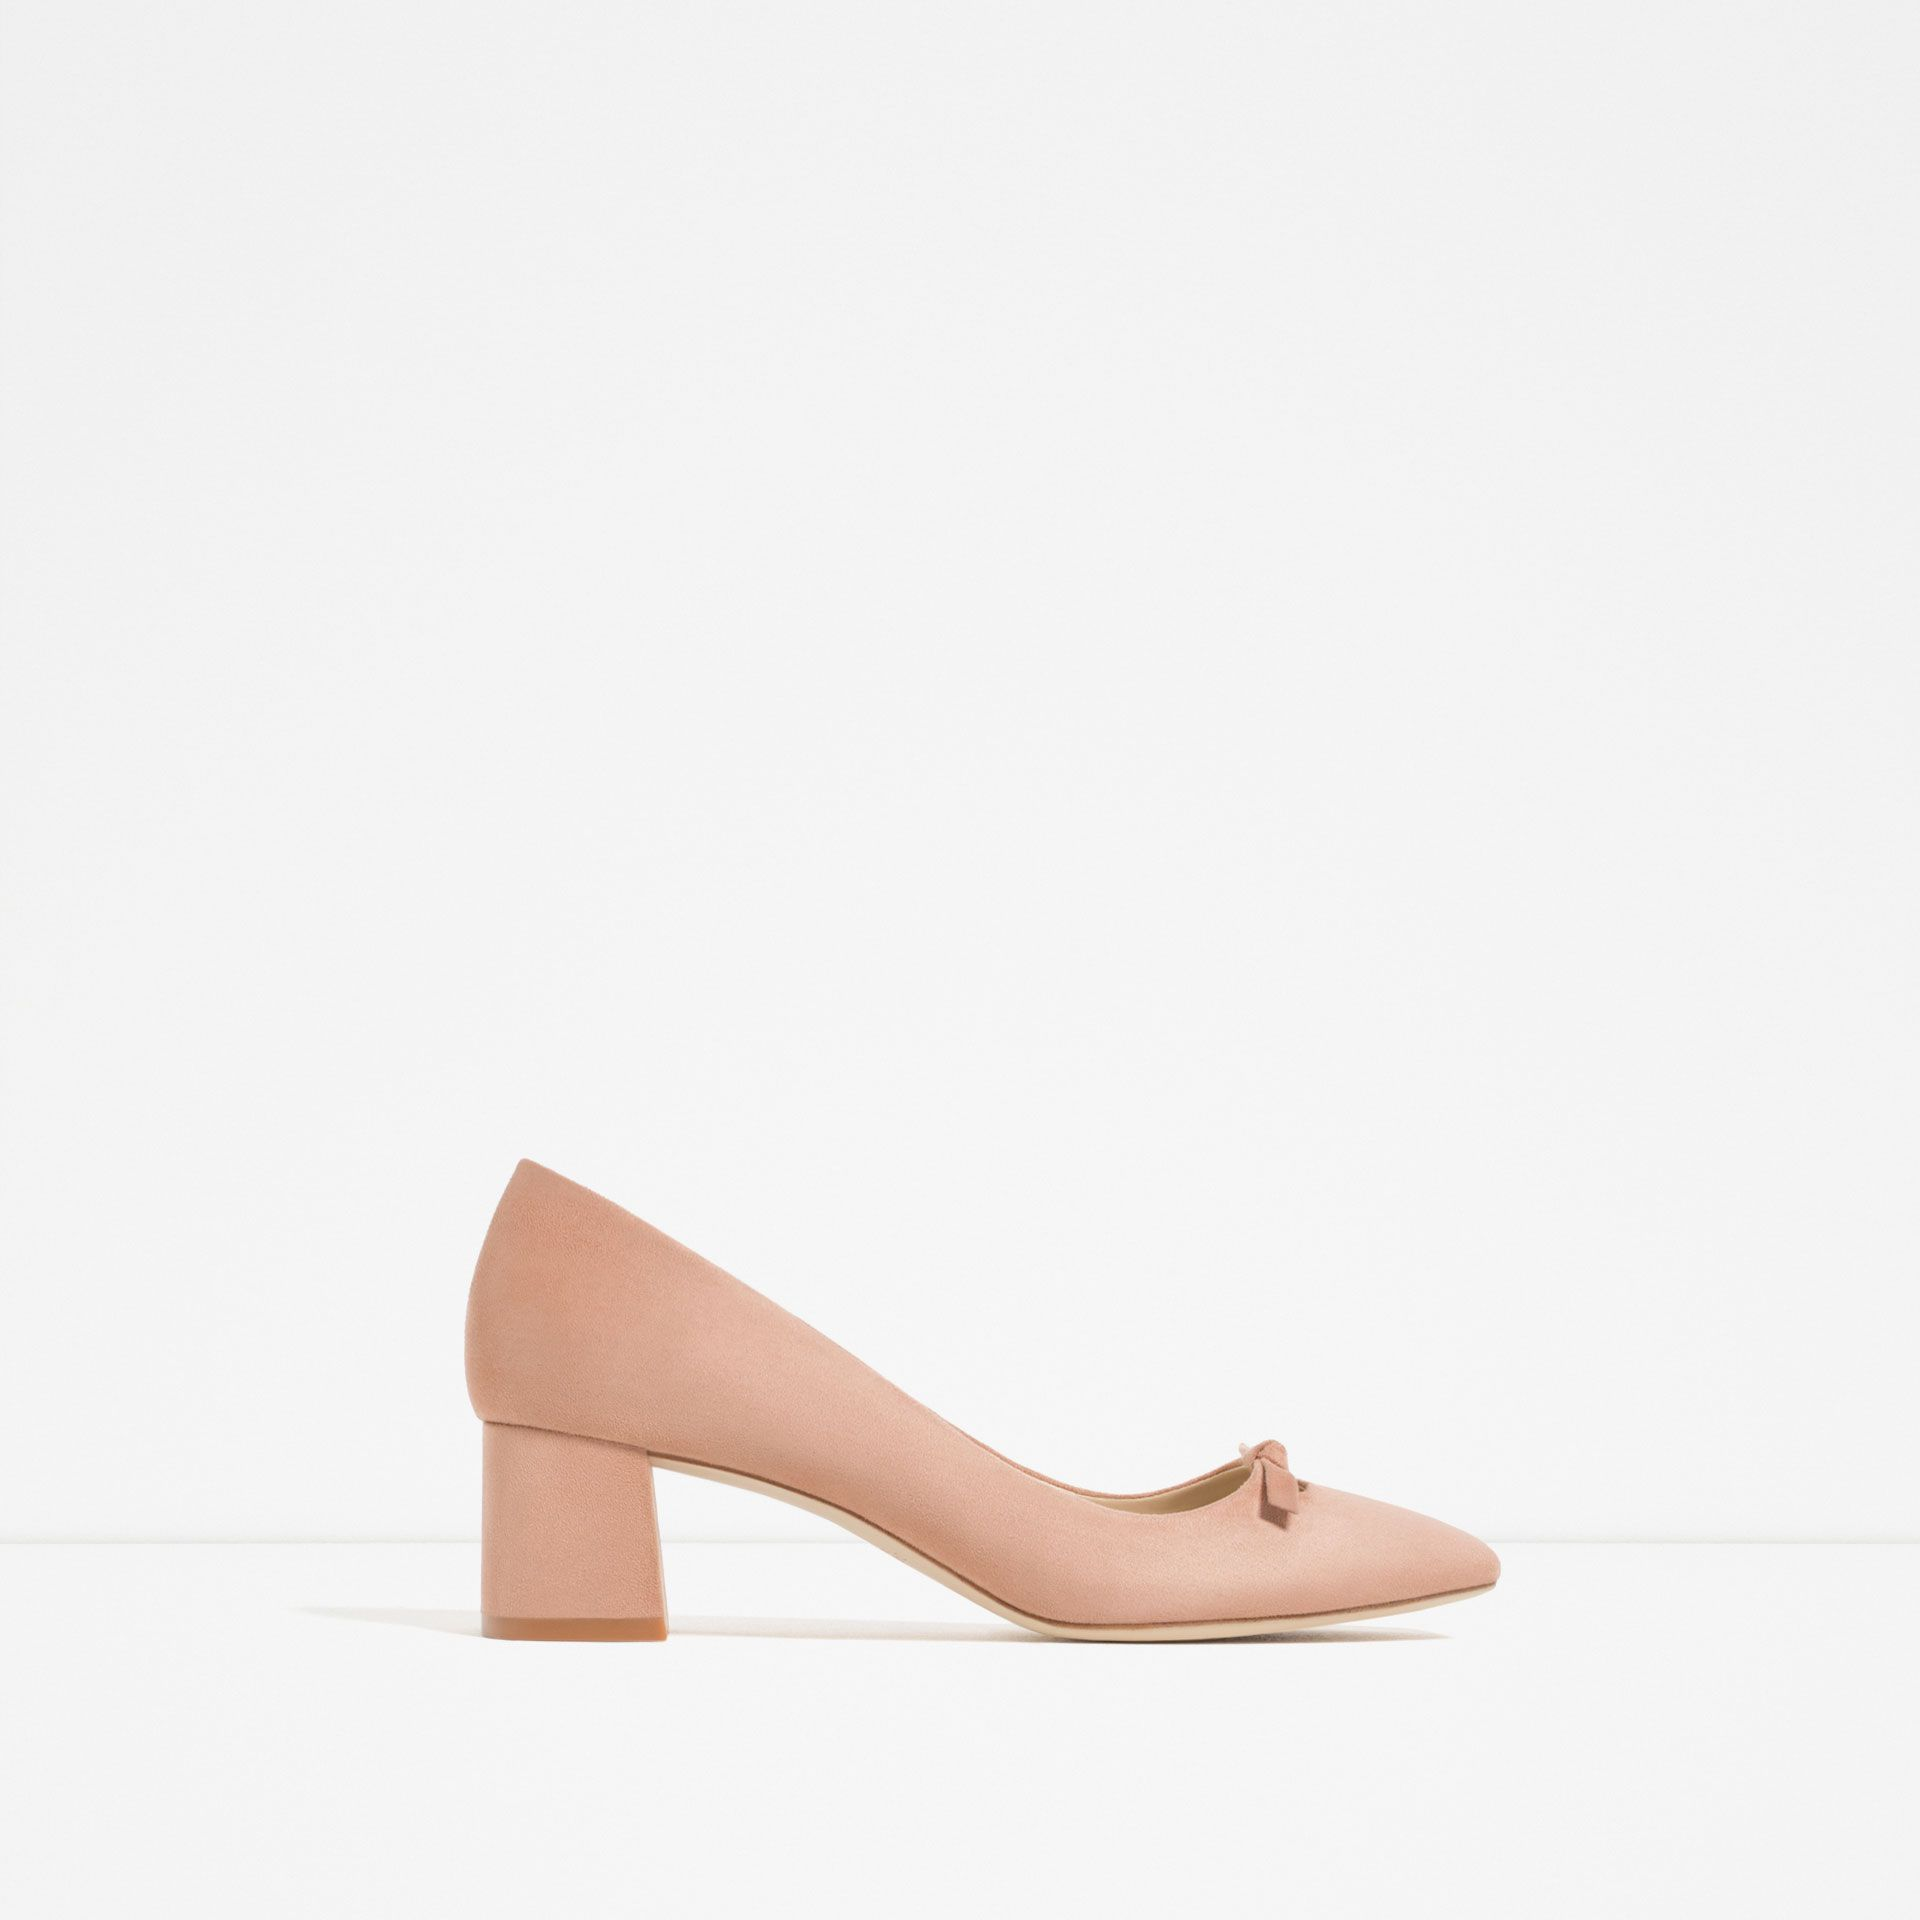 4459c3bd29f Zara High Heels Shoes With Bow Detail